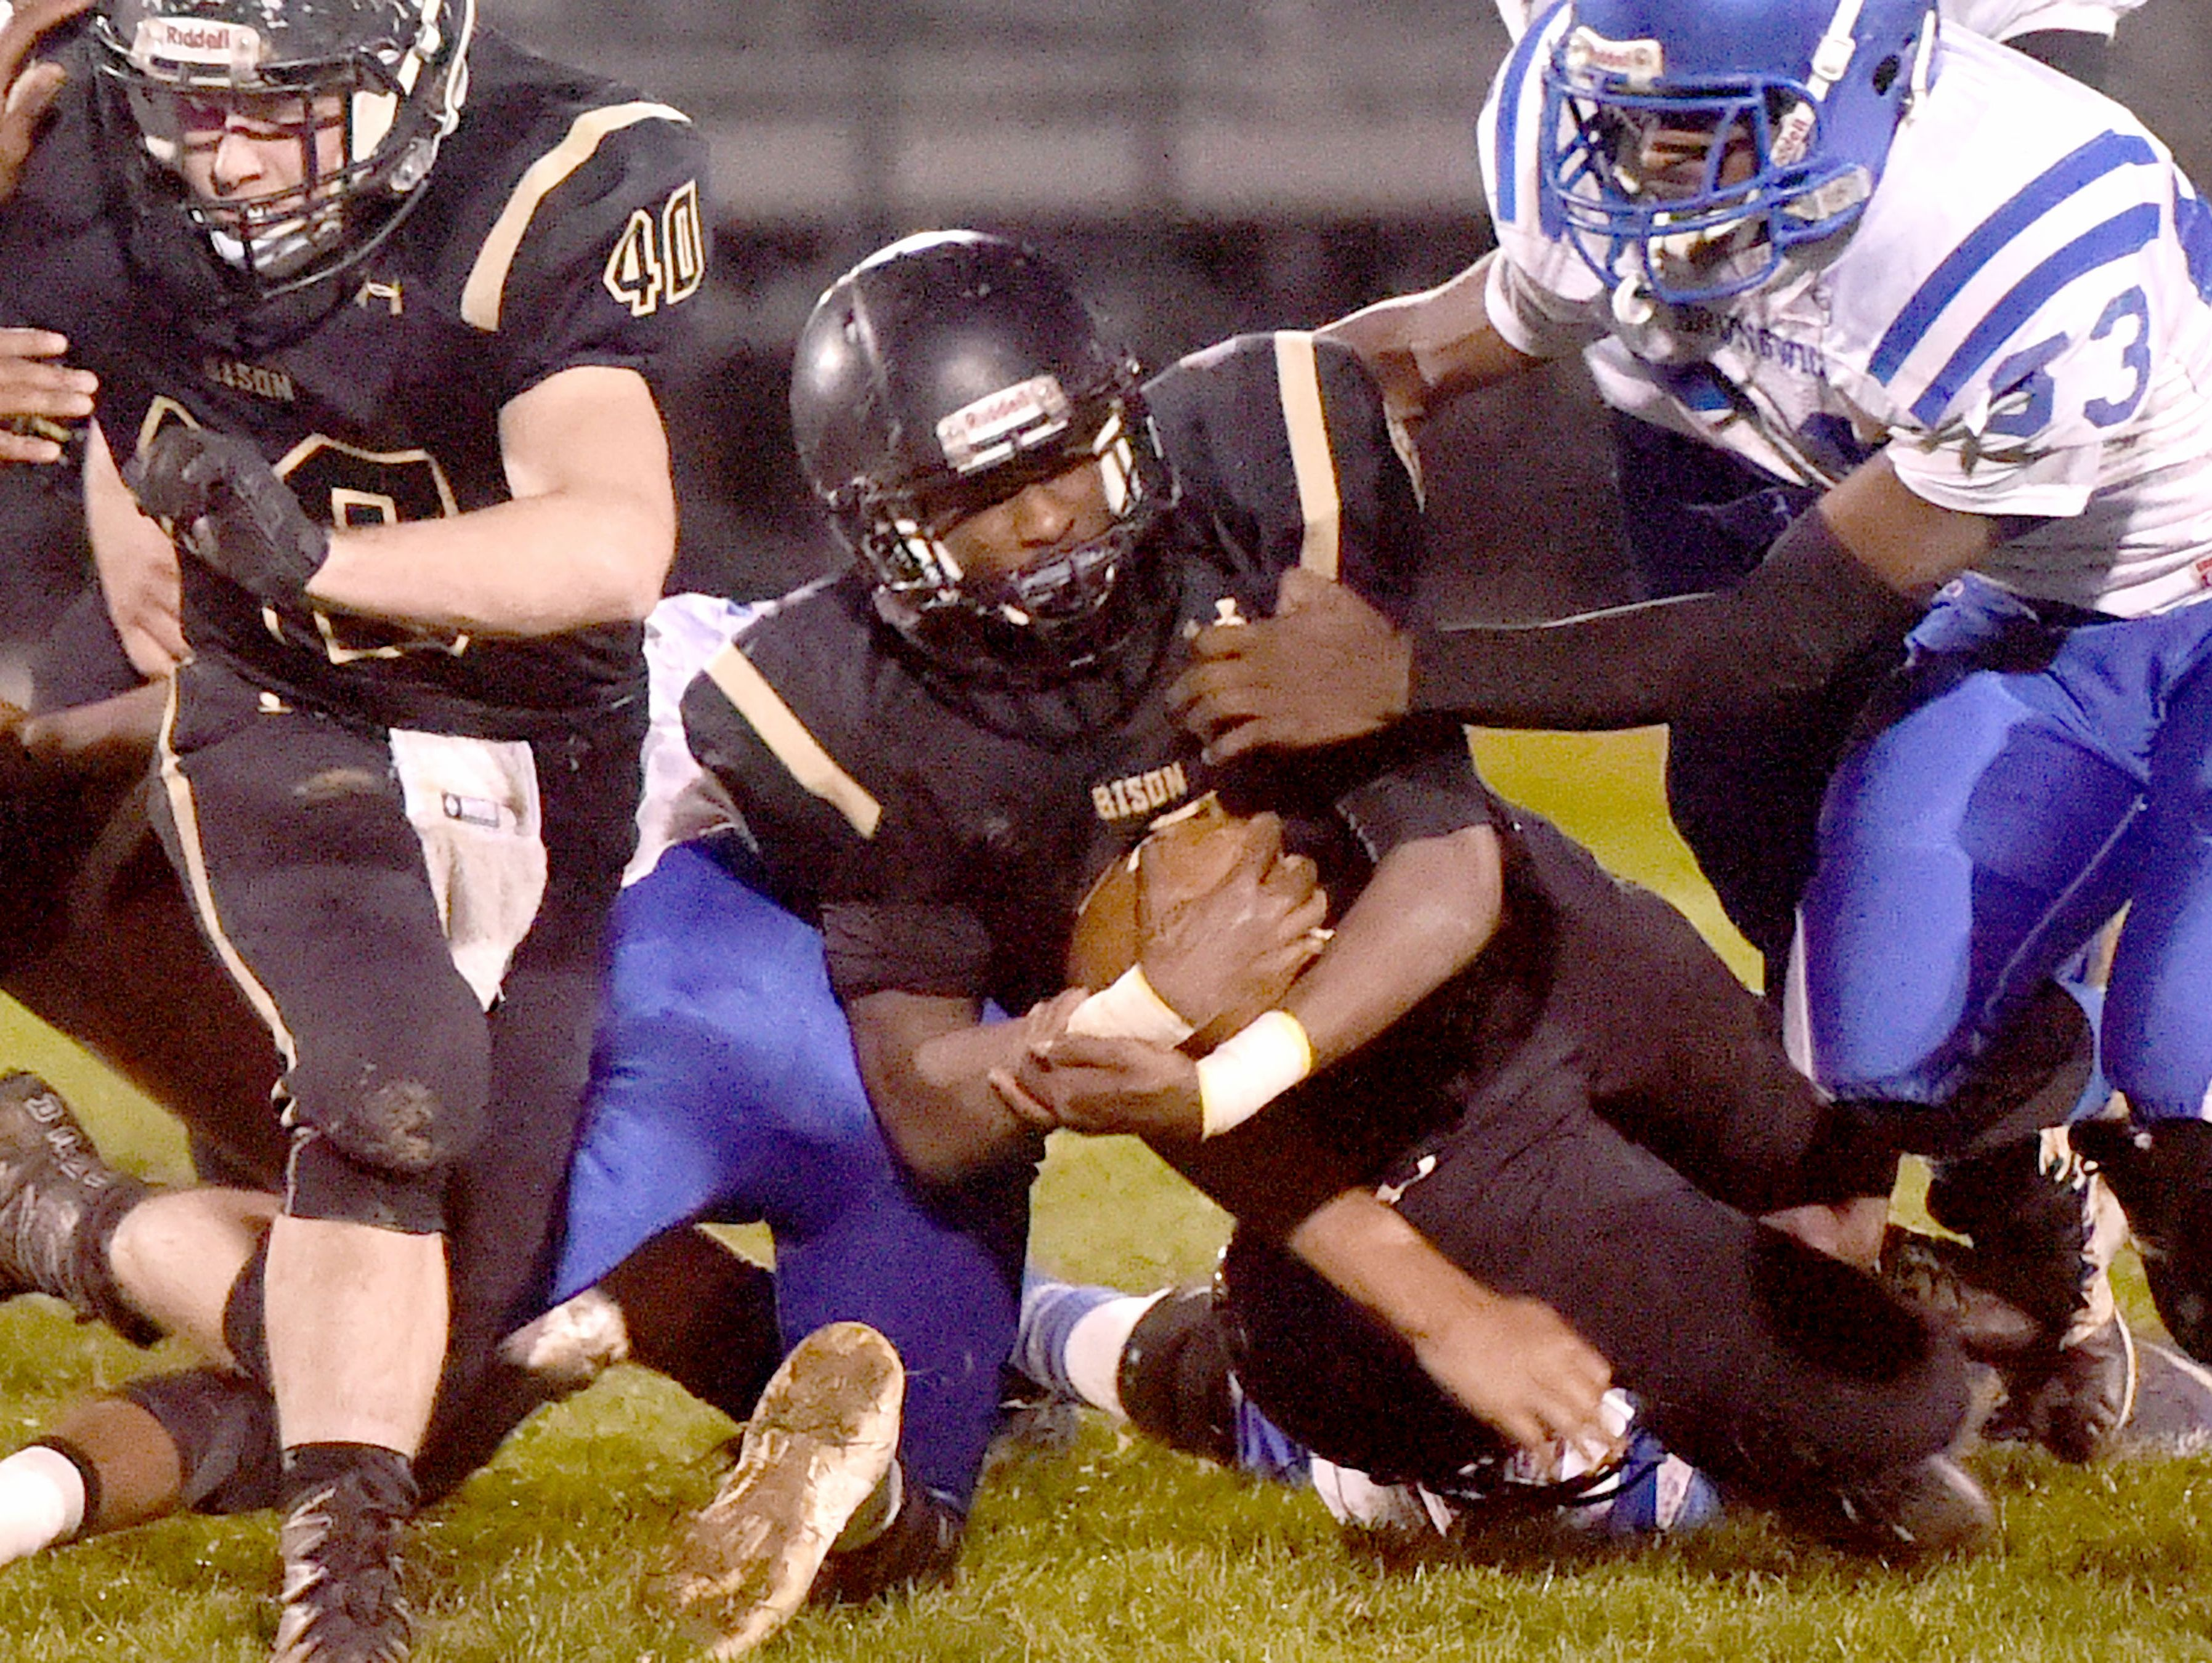 Buffalo Gap's Dylan Thompson is brought down with the ball during a football game played in Swoope on Oct. 27, 2016.